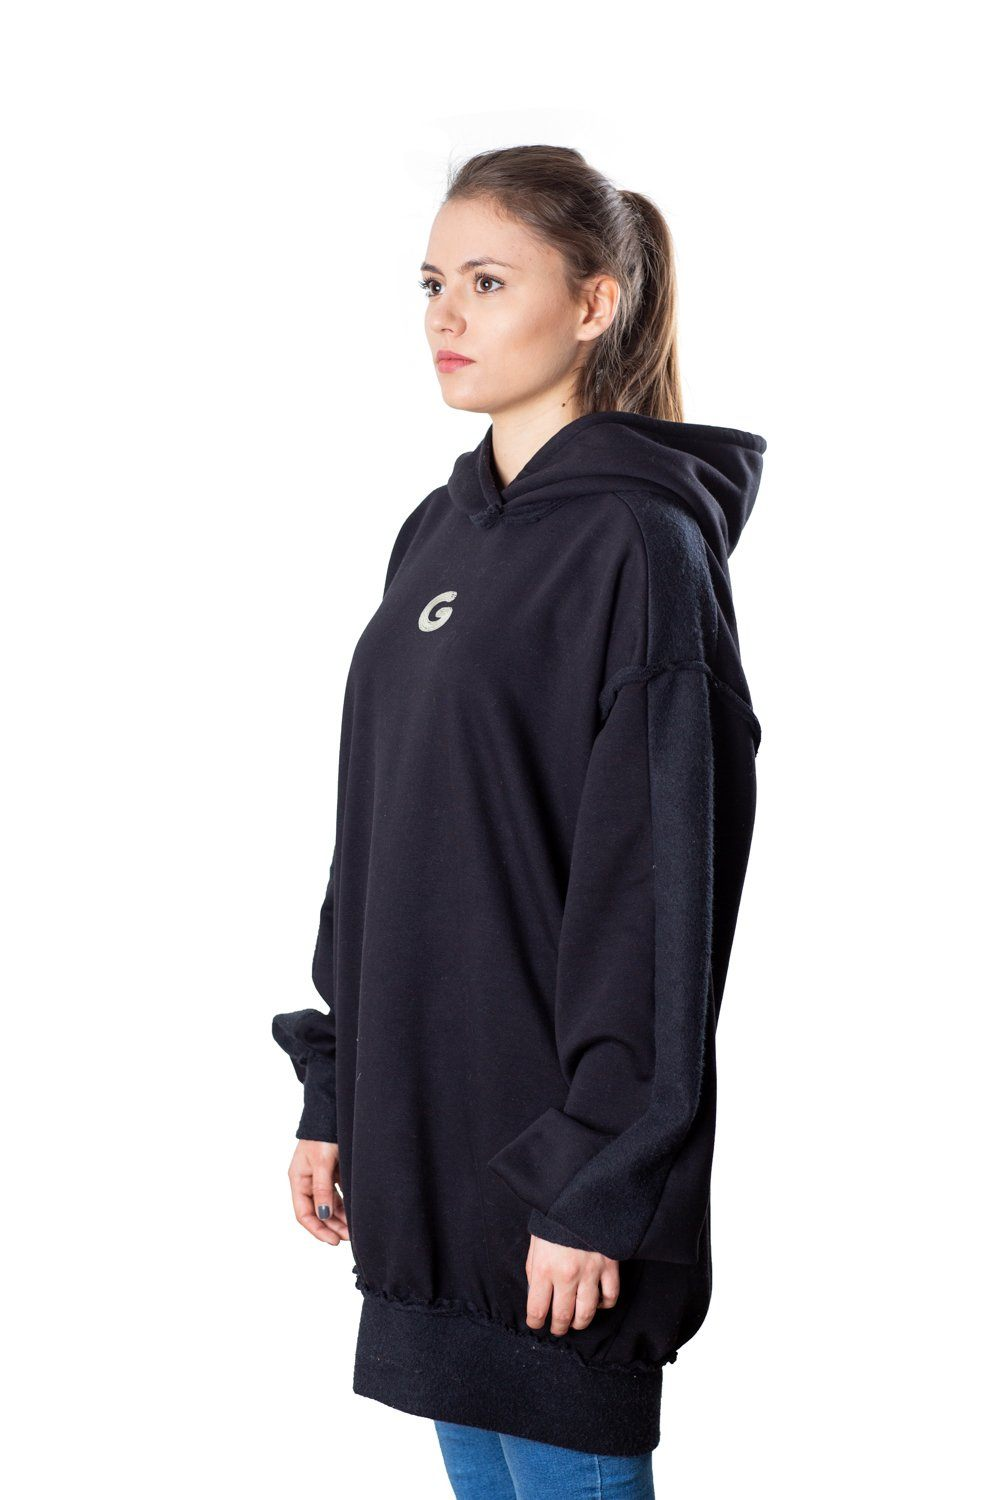 TheG Fresh Oversize Hoody Woman // black